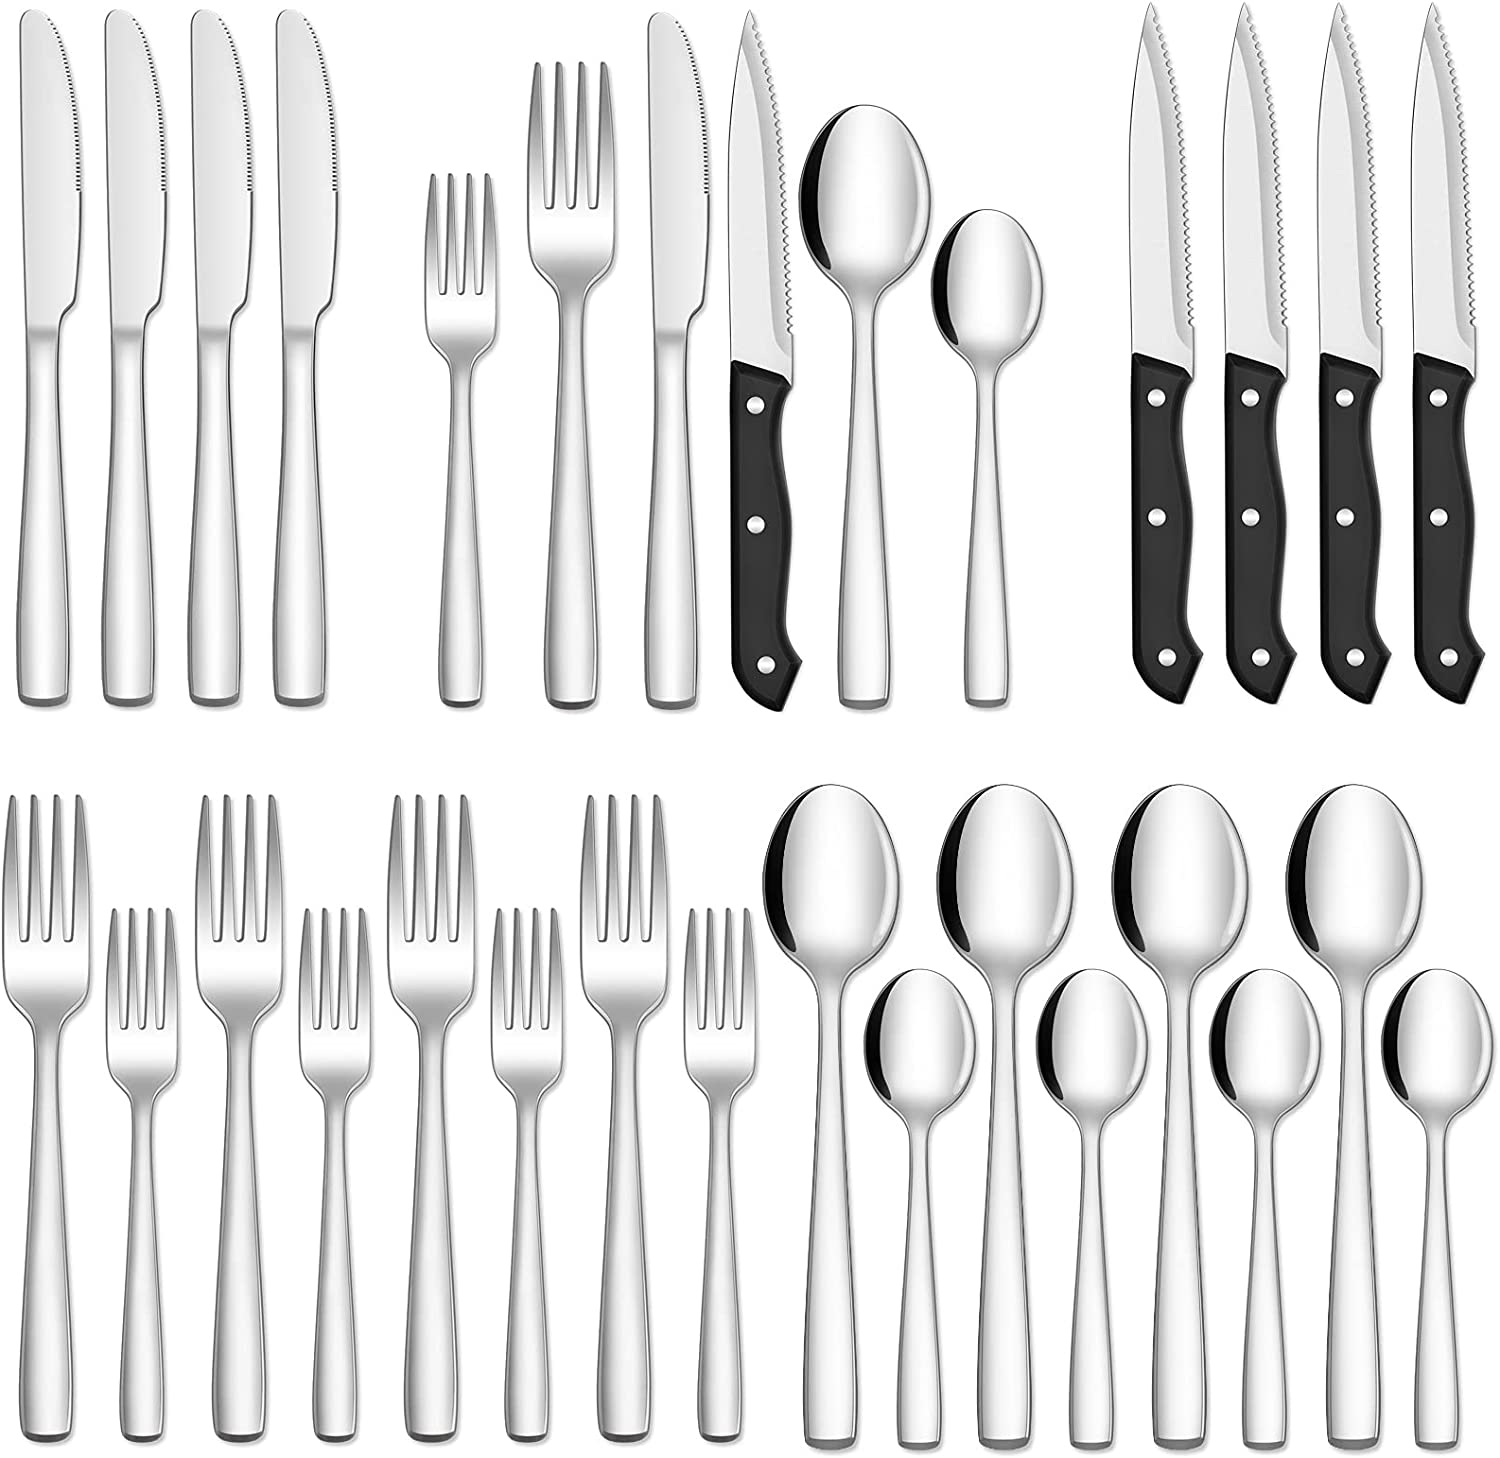 Silverware Set, 24 Pcs Silverware Flatware Set with Steak Knives, Food Grade Stainless Steel Silverware Cutlery Set For Home Kitchen Restaurant Hotel, Mirror Polished, Dishwasher Safe - Service for 4